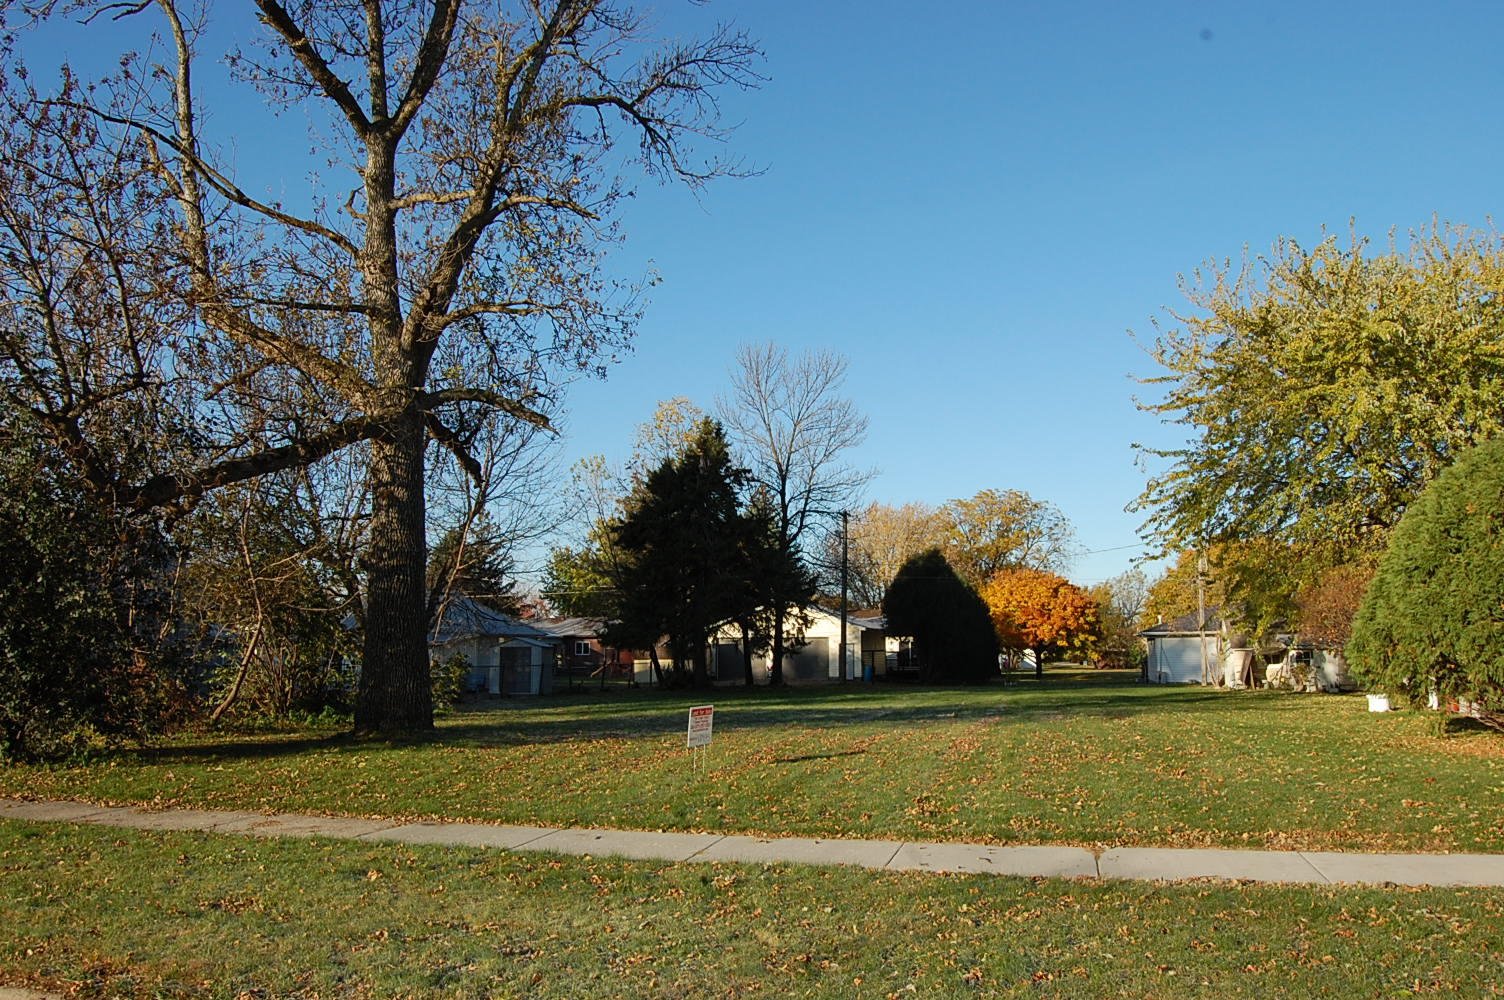 Small Town Minnesota Lot in Quiet Neighborhood - Image 0